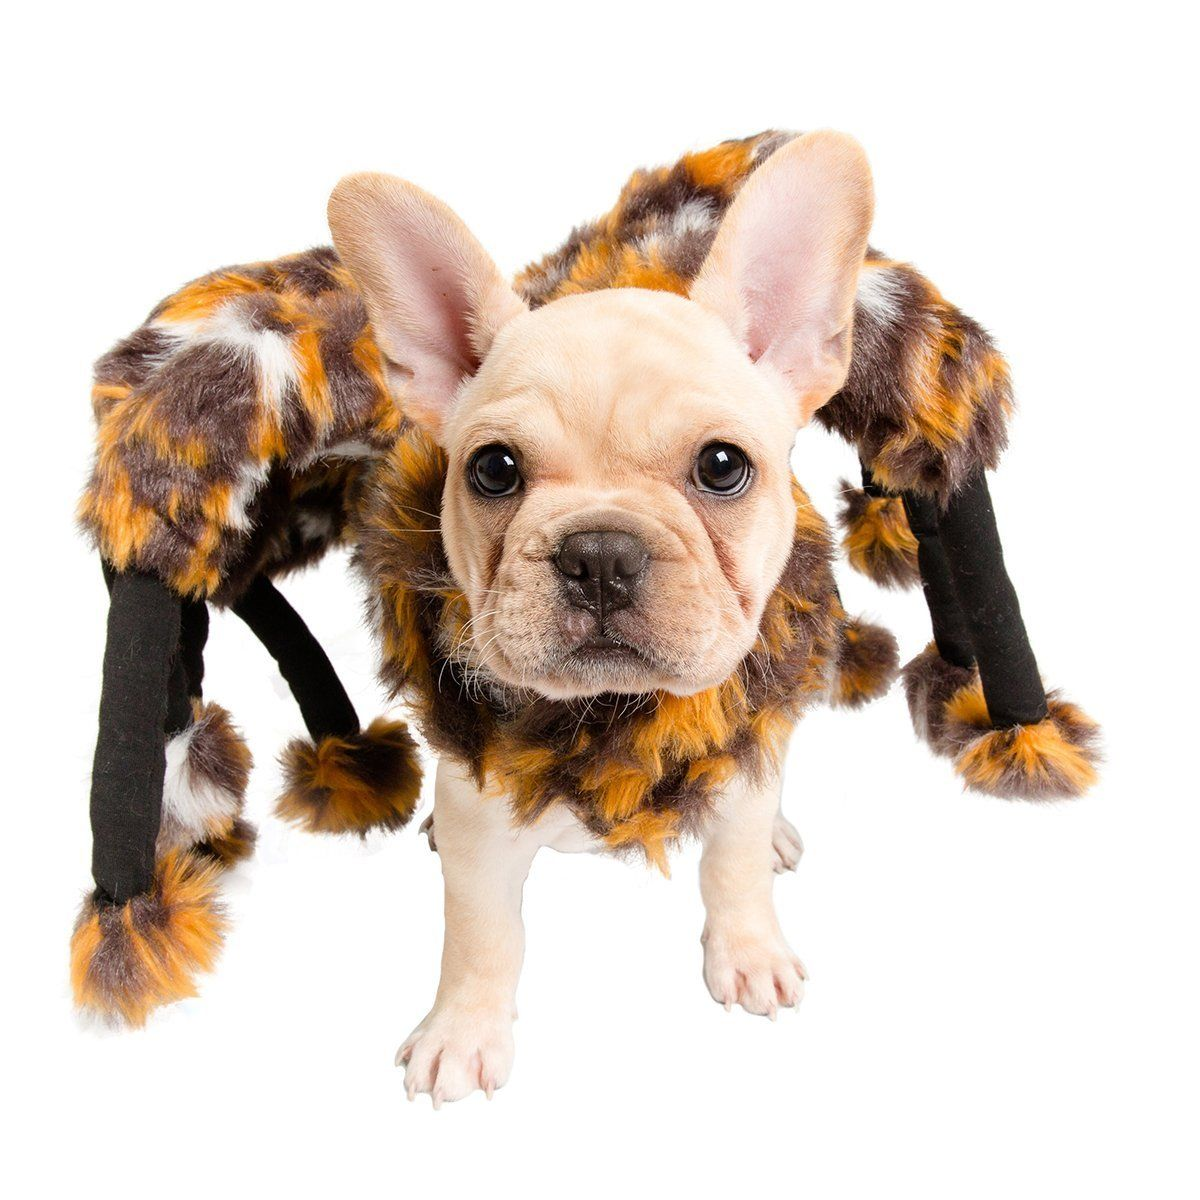 Scary Spider Dog Costume Dog Spider Costume Pet Costumes